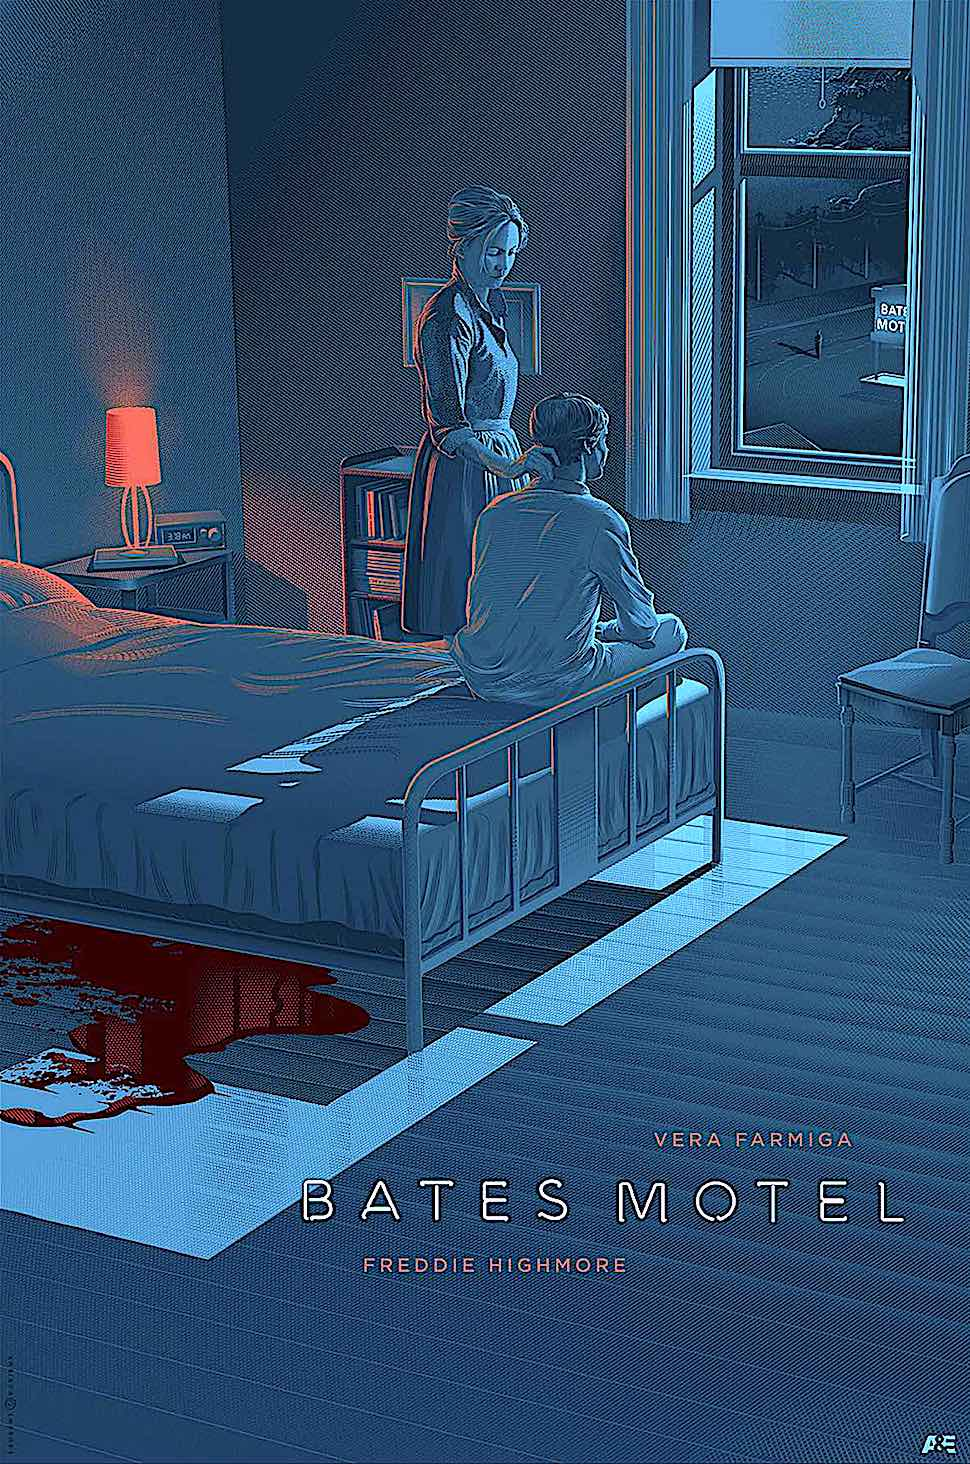 Laurent Durieux Bates Motel, a poster illustration of mother and son and murder